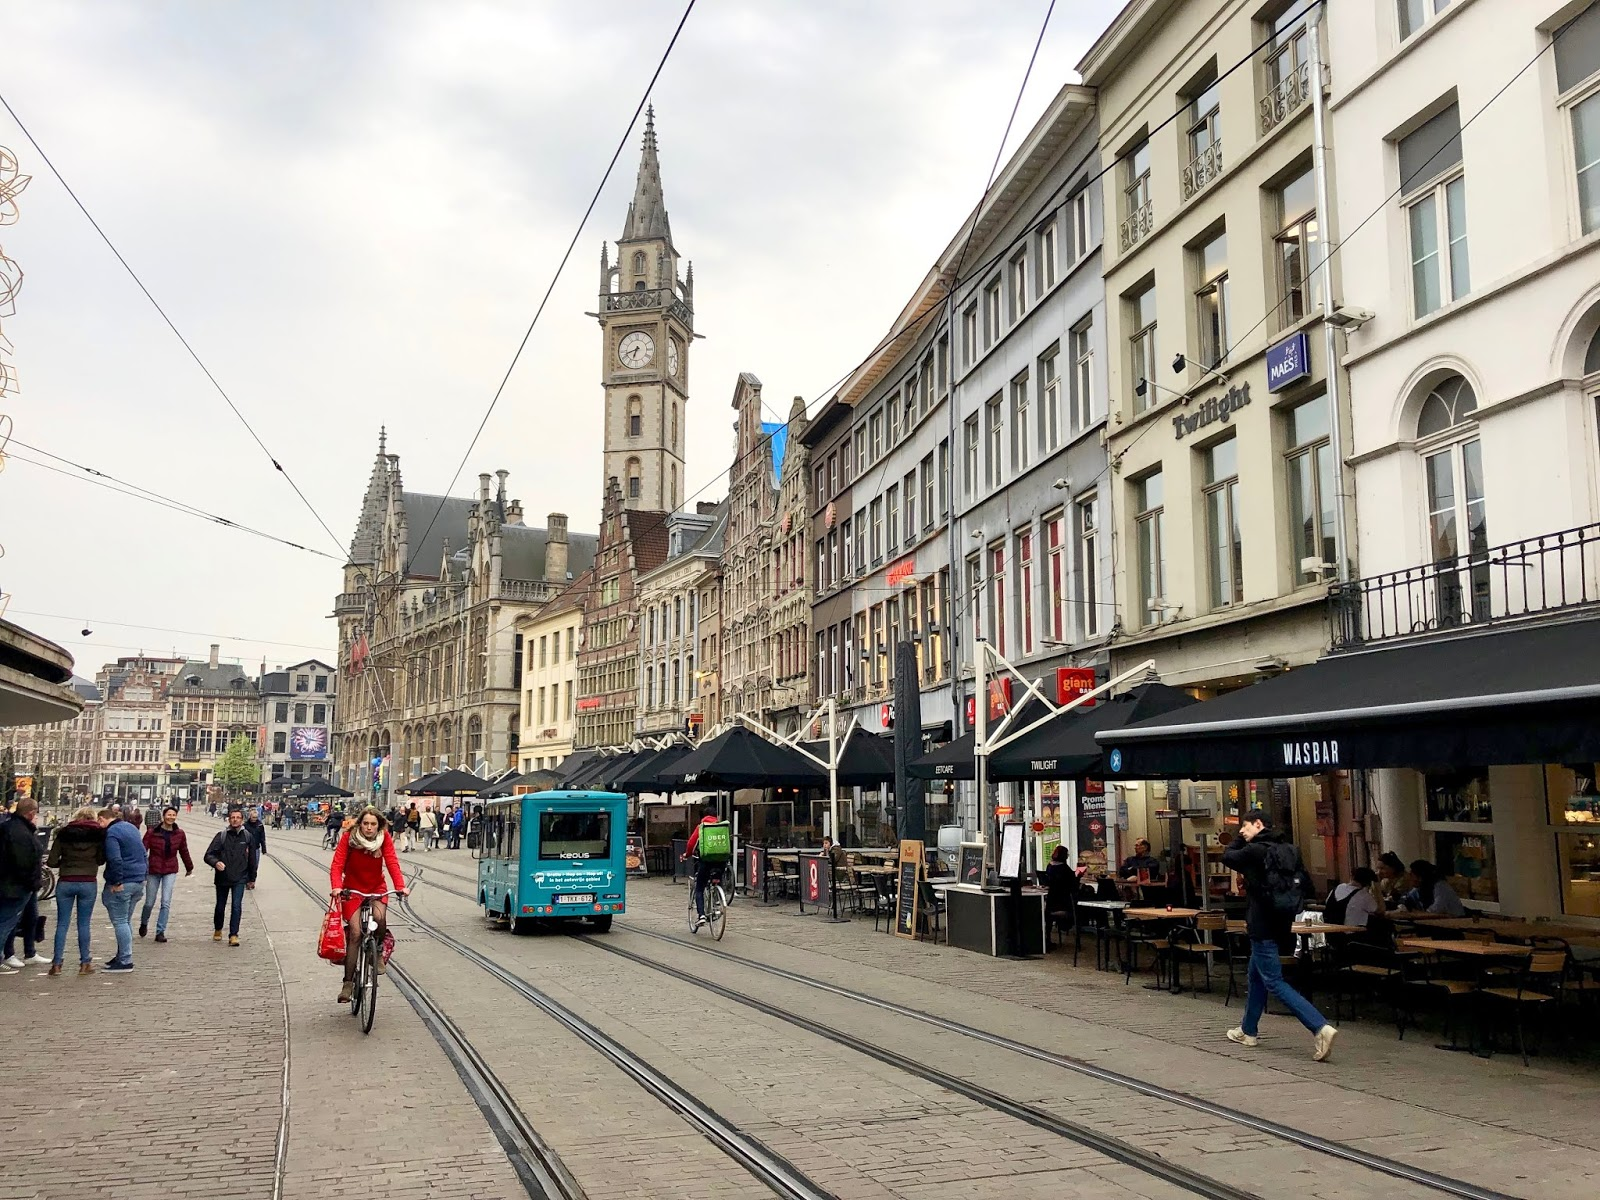 Streets of Gent, Belgium in spring 2019